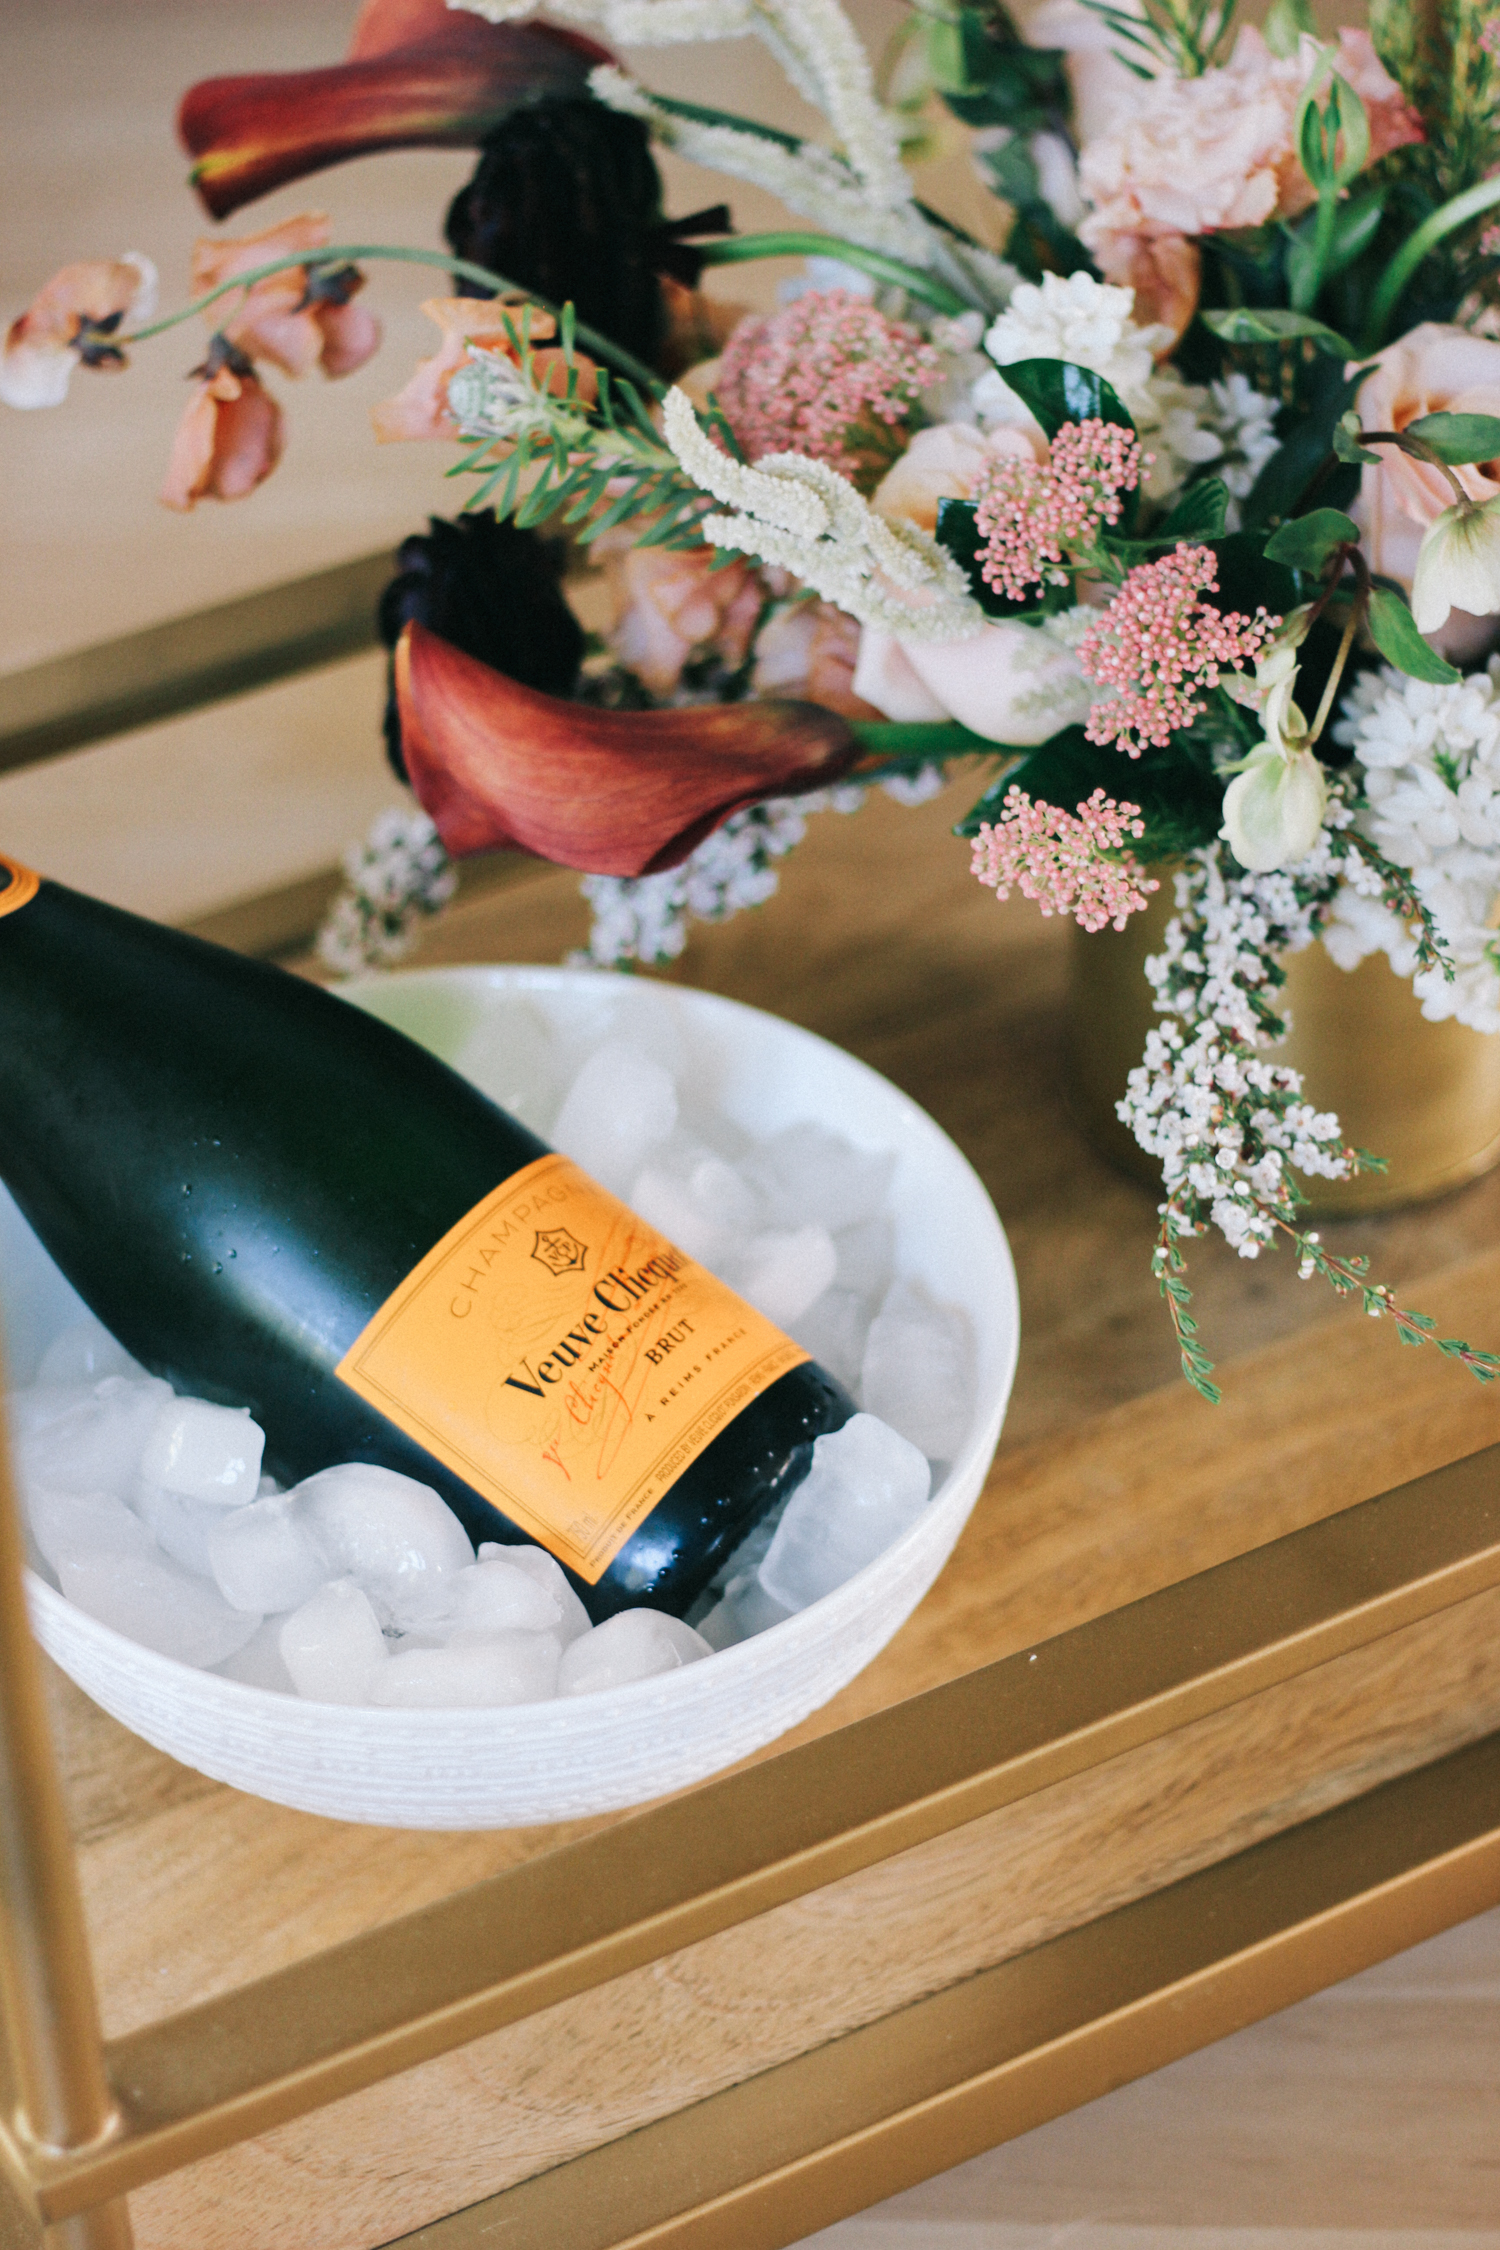 Champagne on ice for a spring brunch | A Fabulous Fete